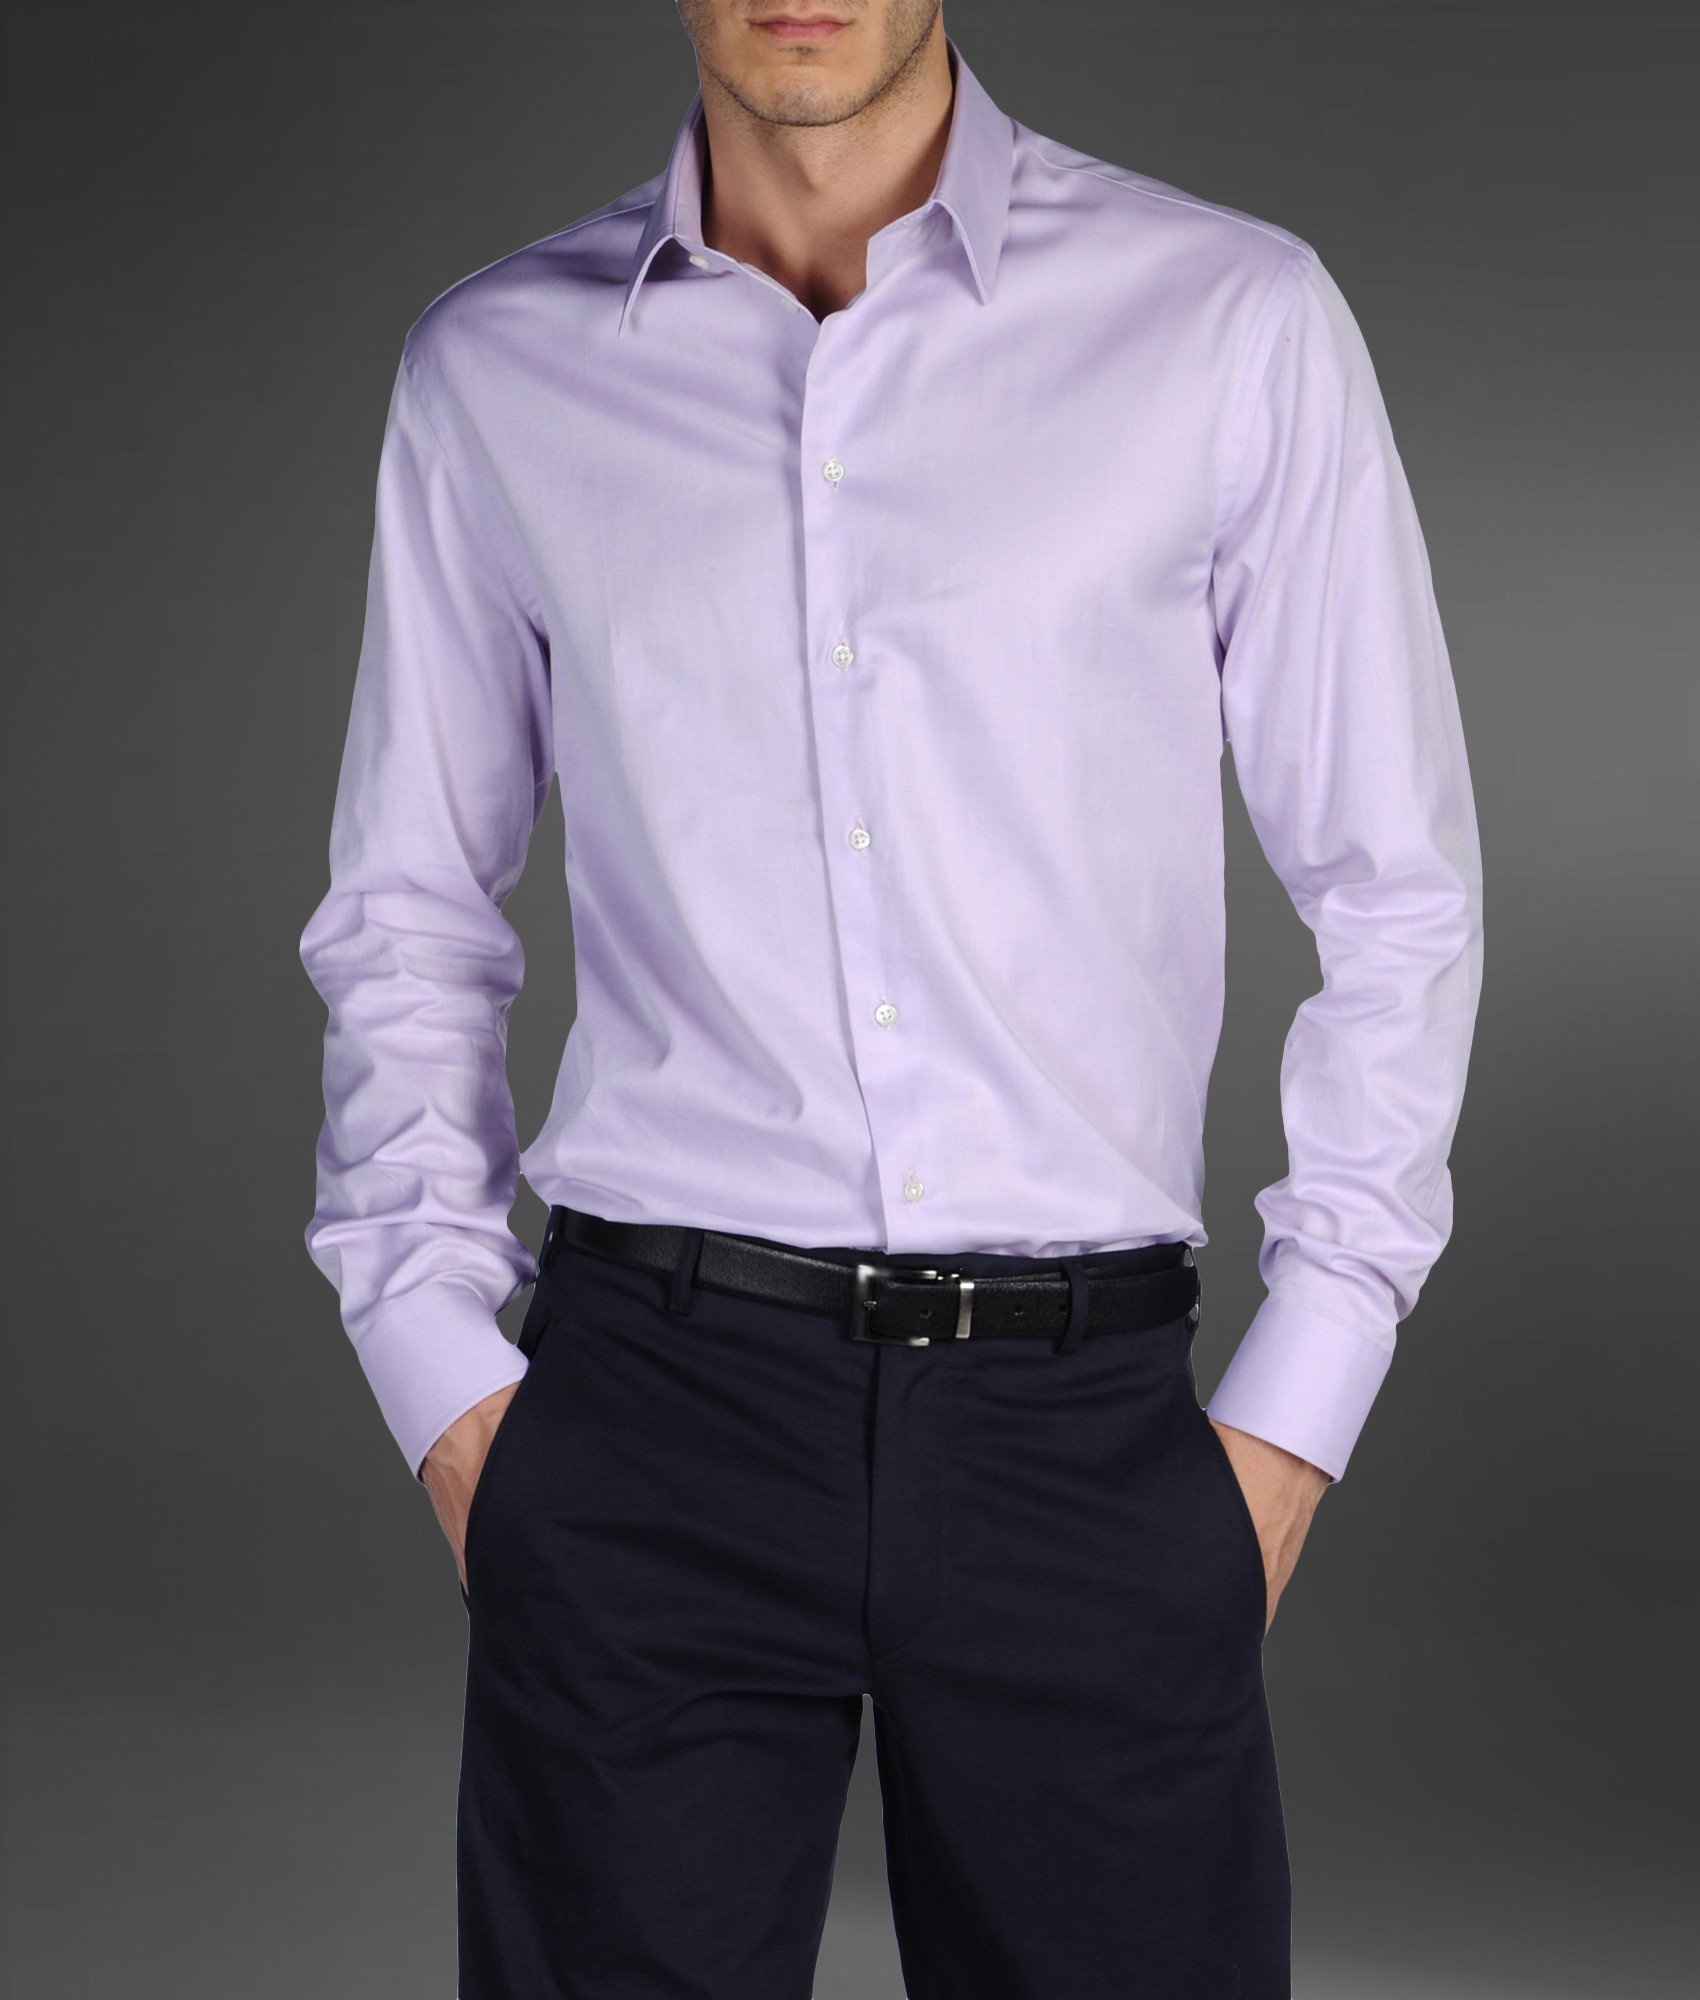 Light purple long sleeve shirt custom shirt Light purple dress shirt men